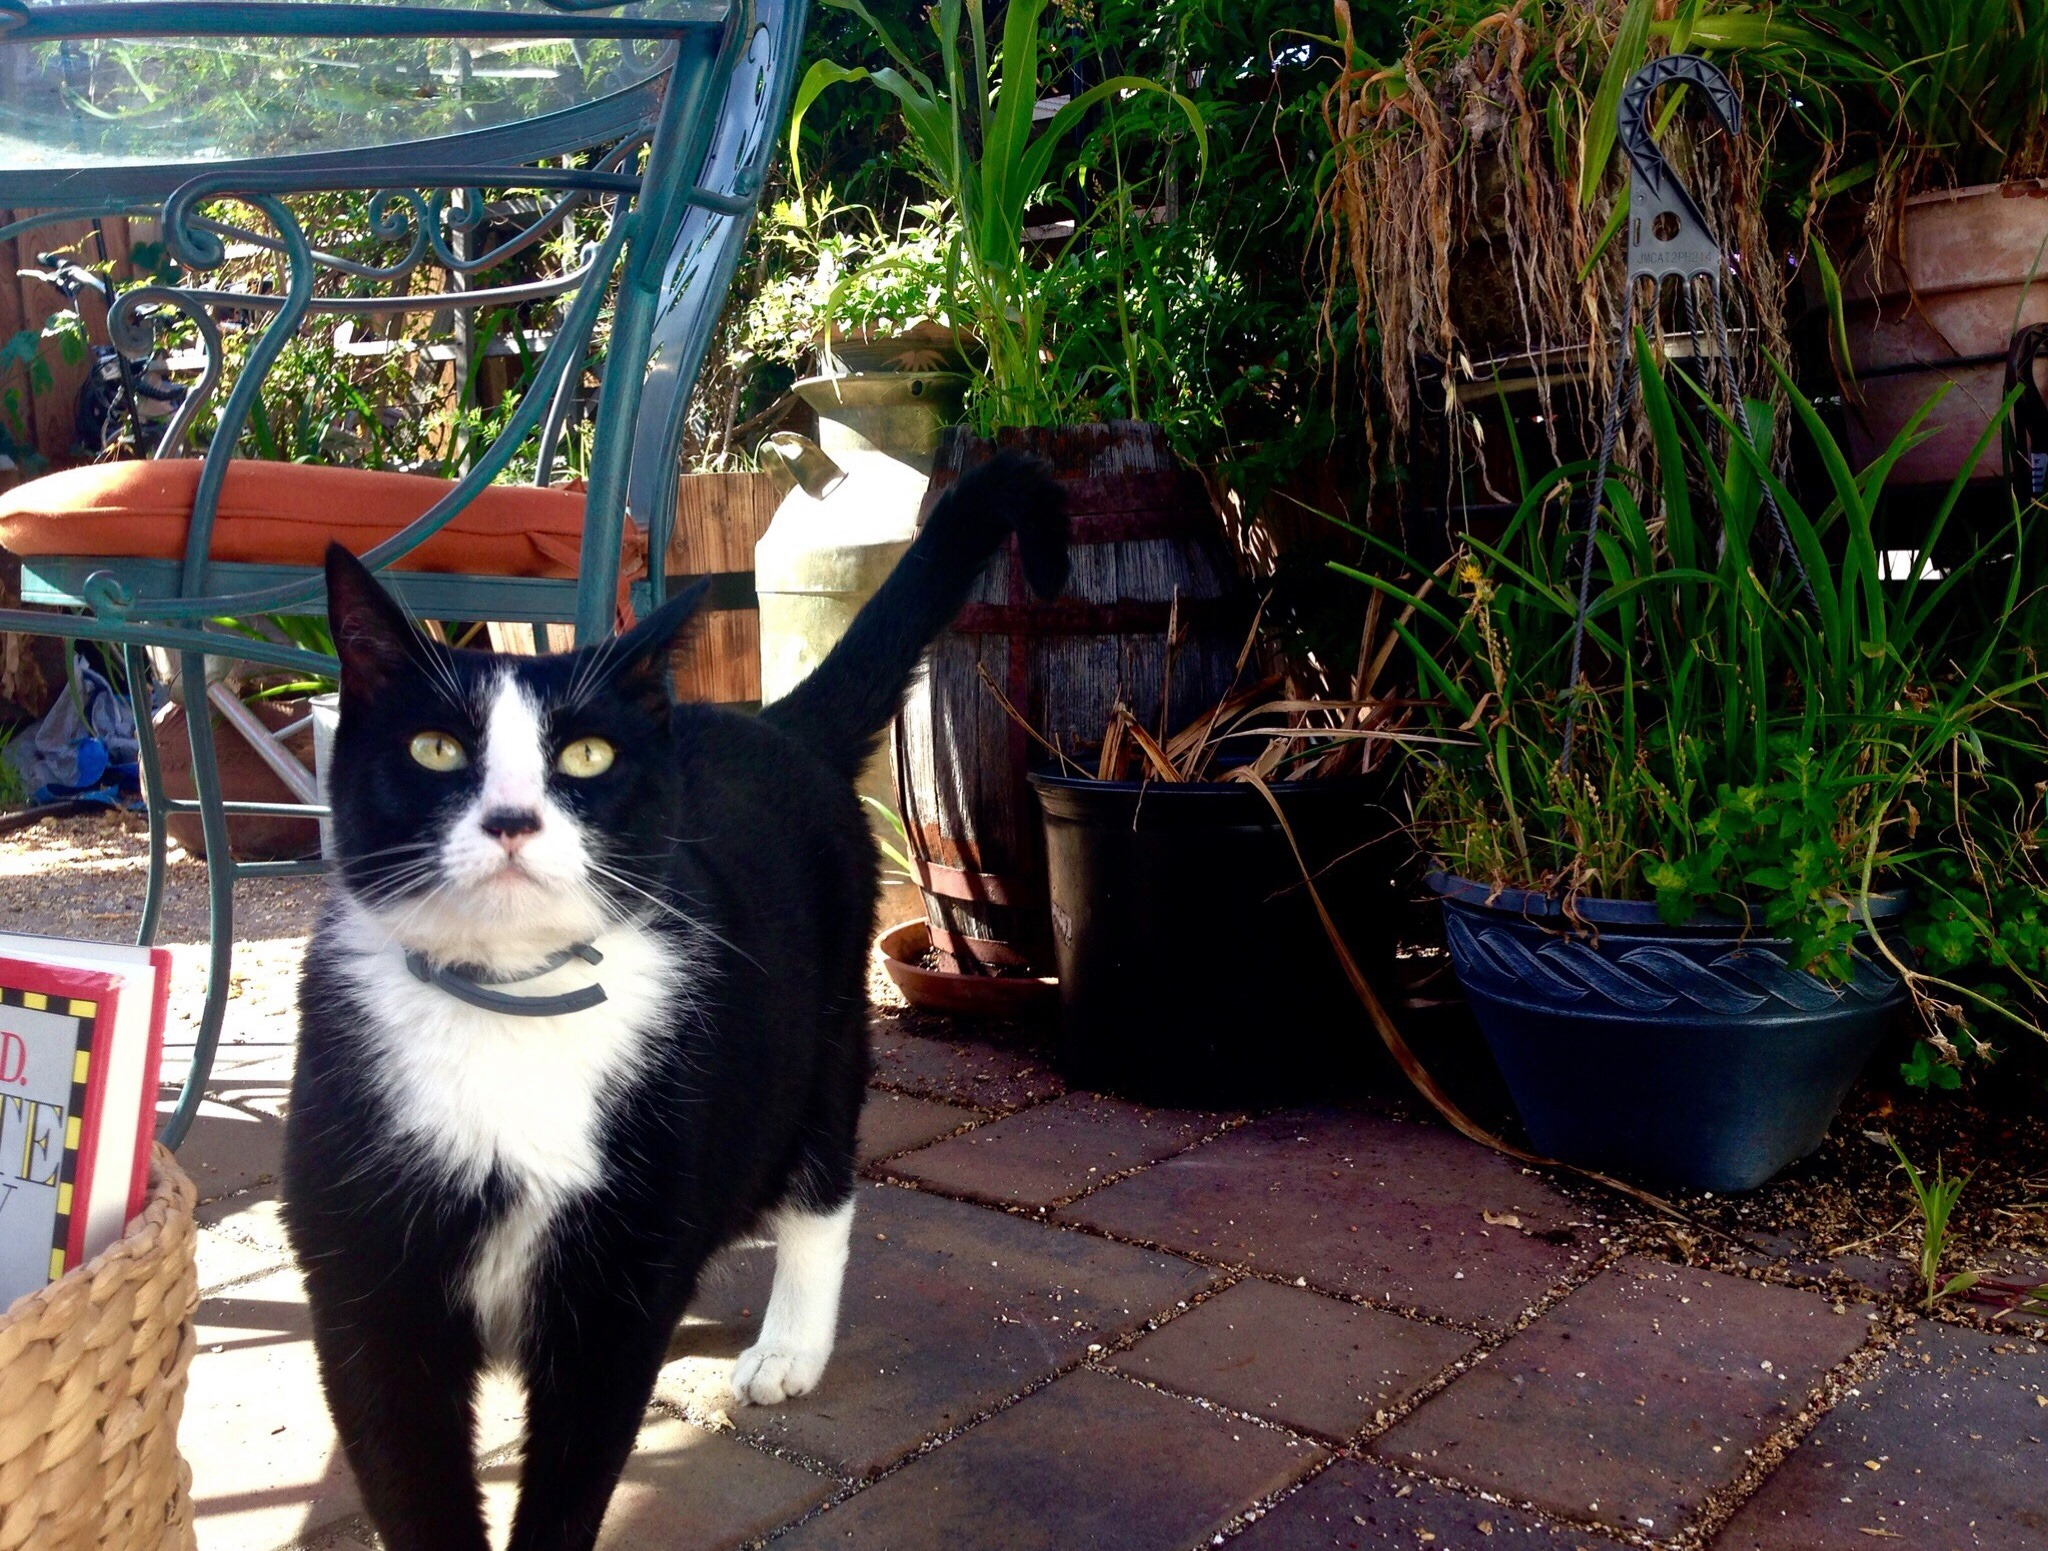 Tux - She loves to hang out in the studio with all the kids and be the center of attention.